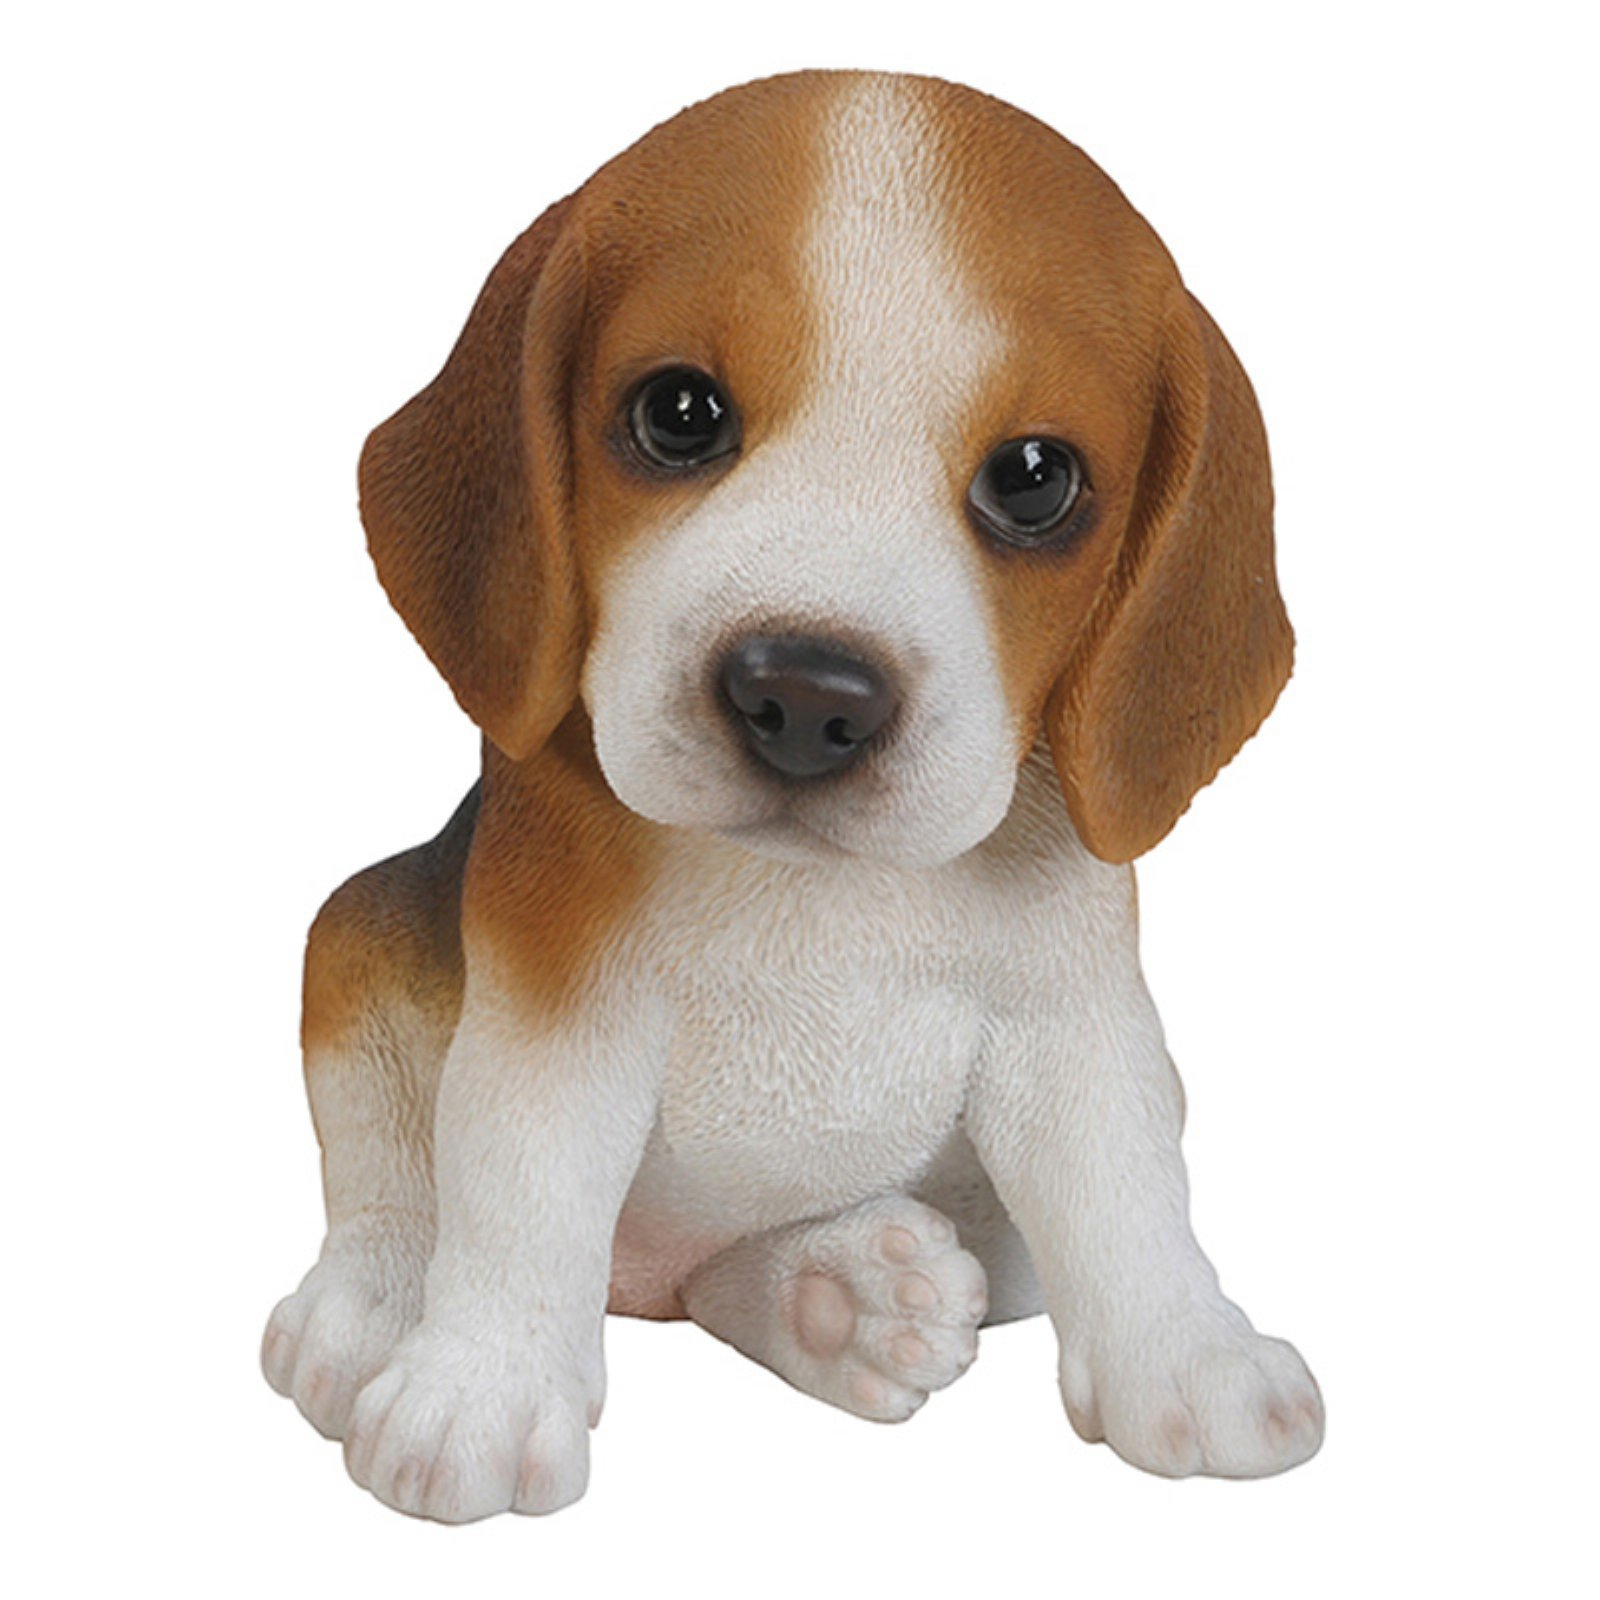 Natures Gallery Beagle Puppy Statue Beagle Puppy Cute Dogs Beagle